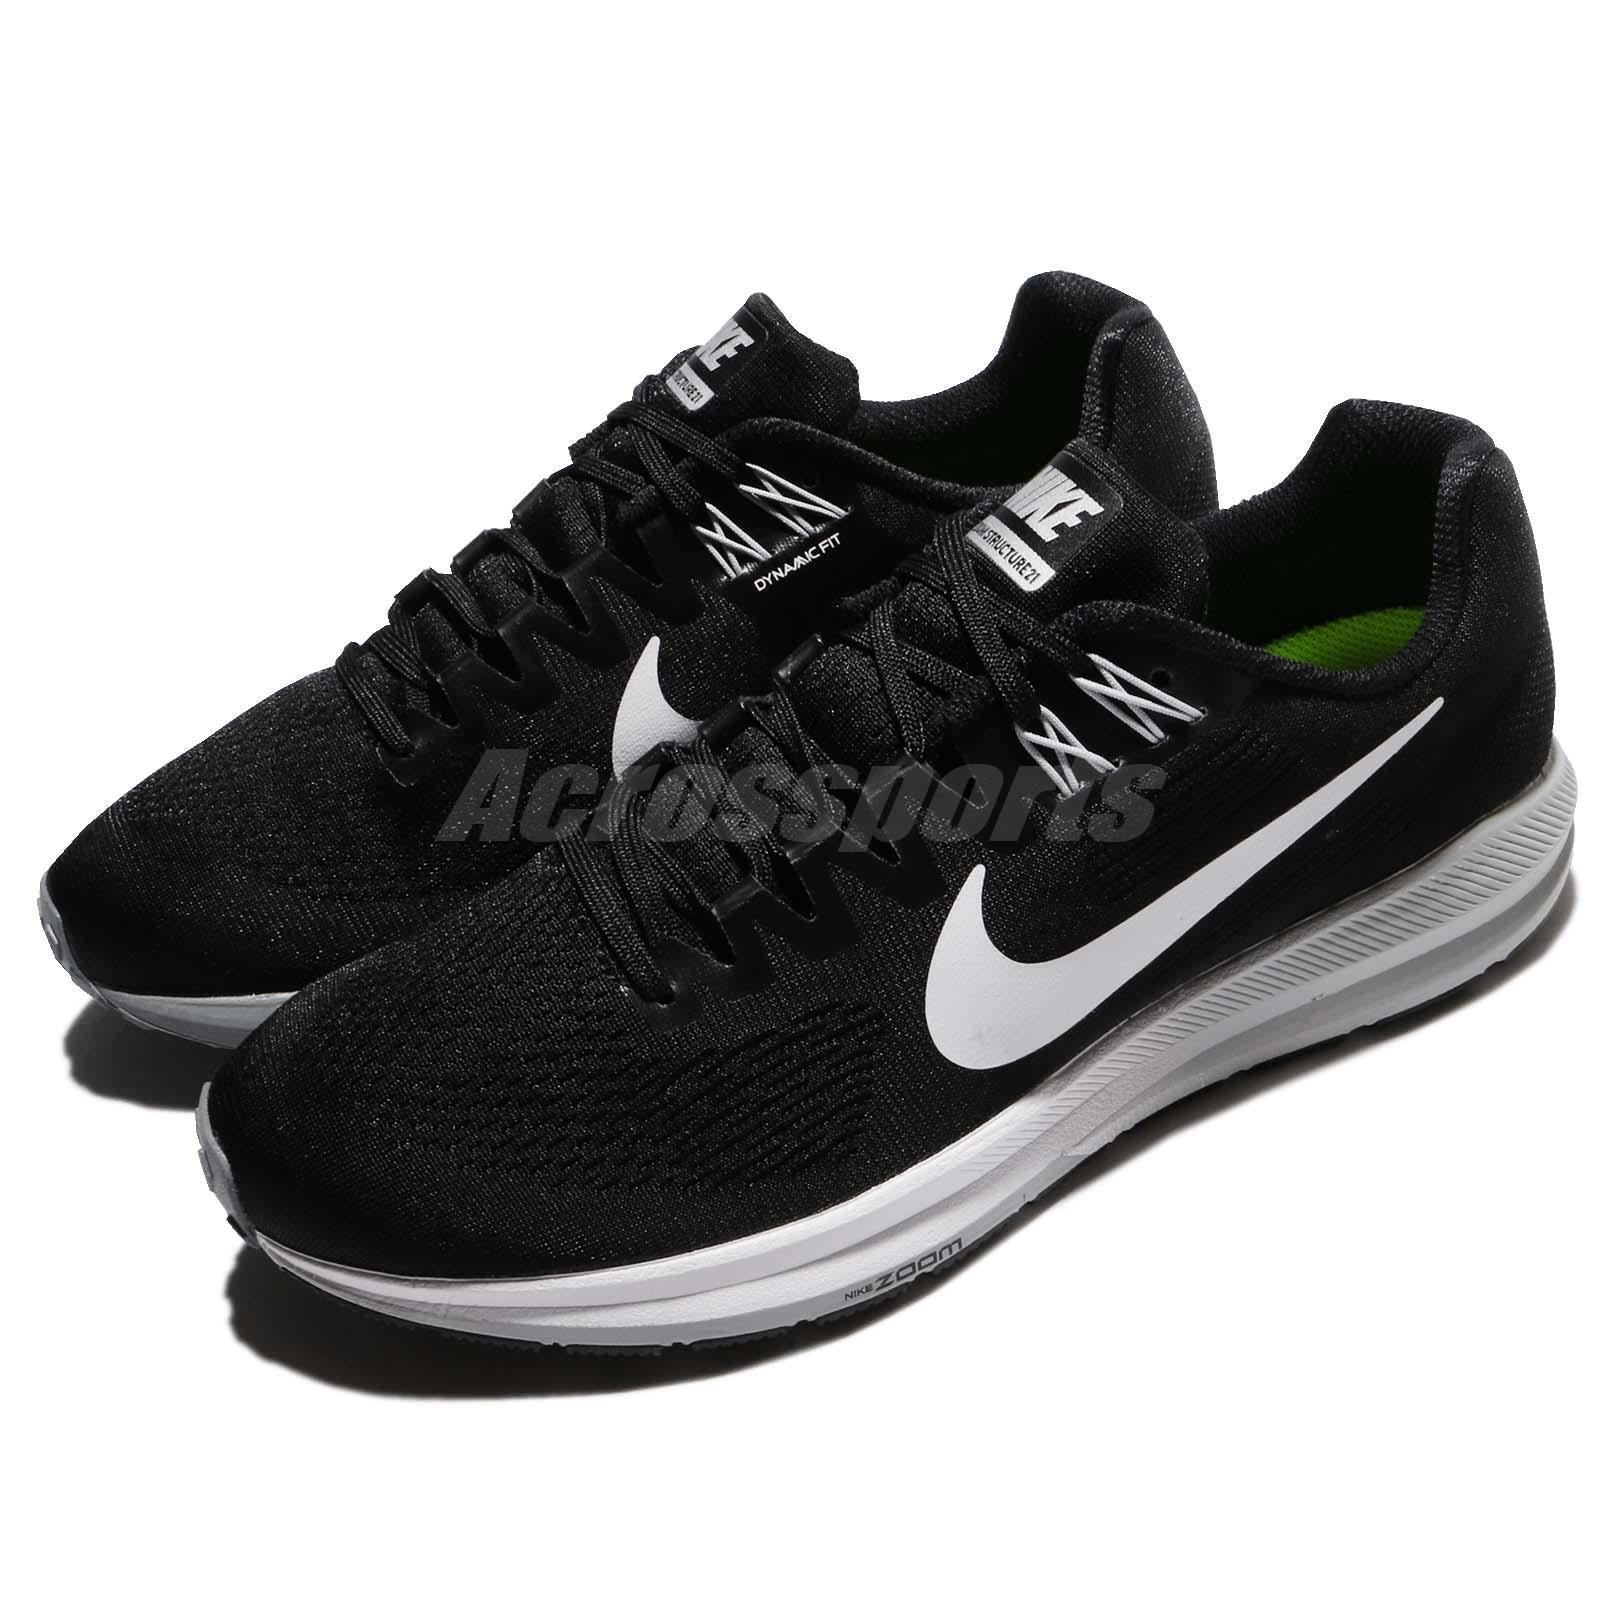 Nike Air Zoom Structure 21 Black White Men Running shoes Sneakers 904695-001